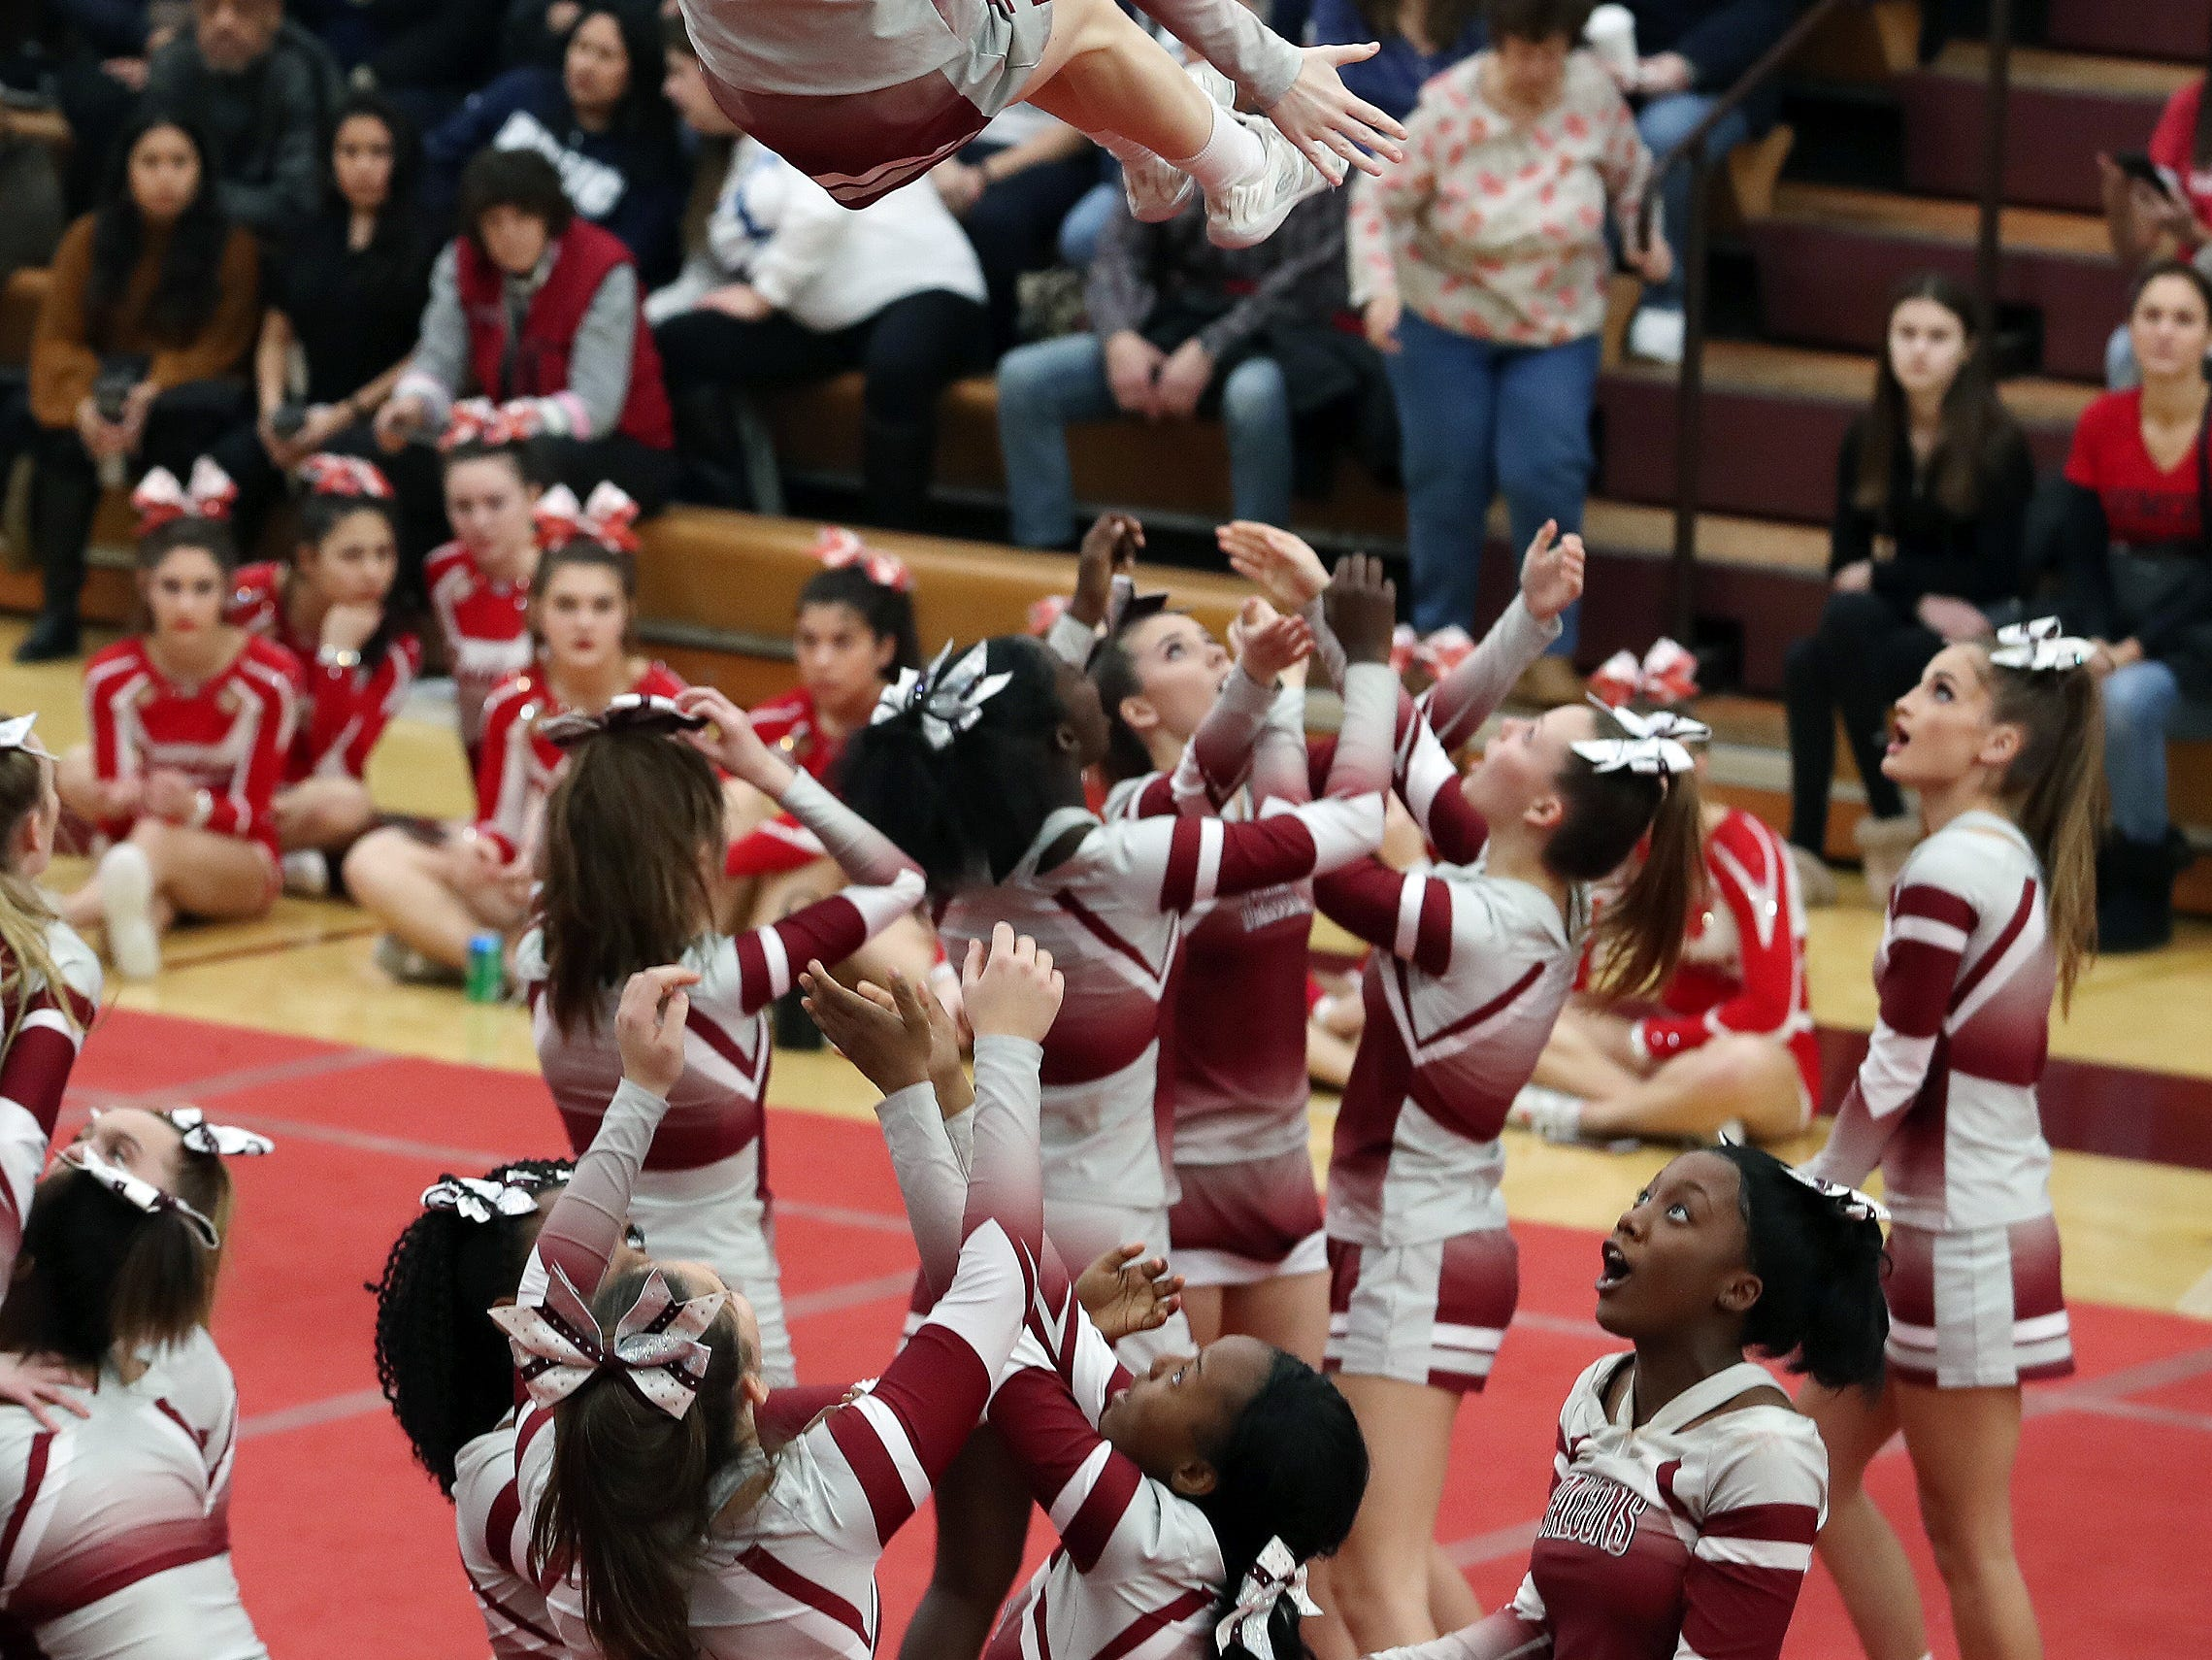 Alberts Magnus High School competes during the Section 1 cheerleading championships at Arlington High School in Freedom Plains Feb. 16, 2019.